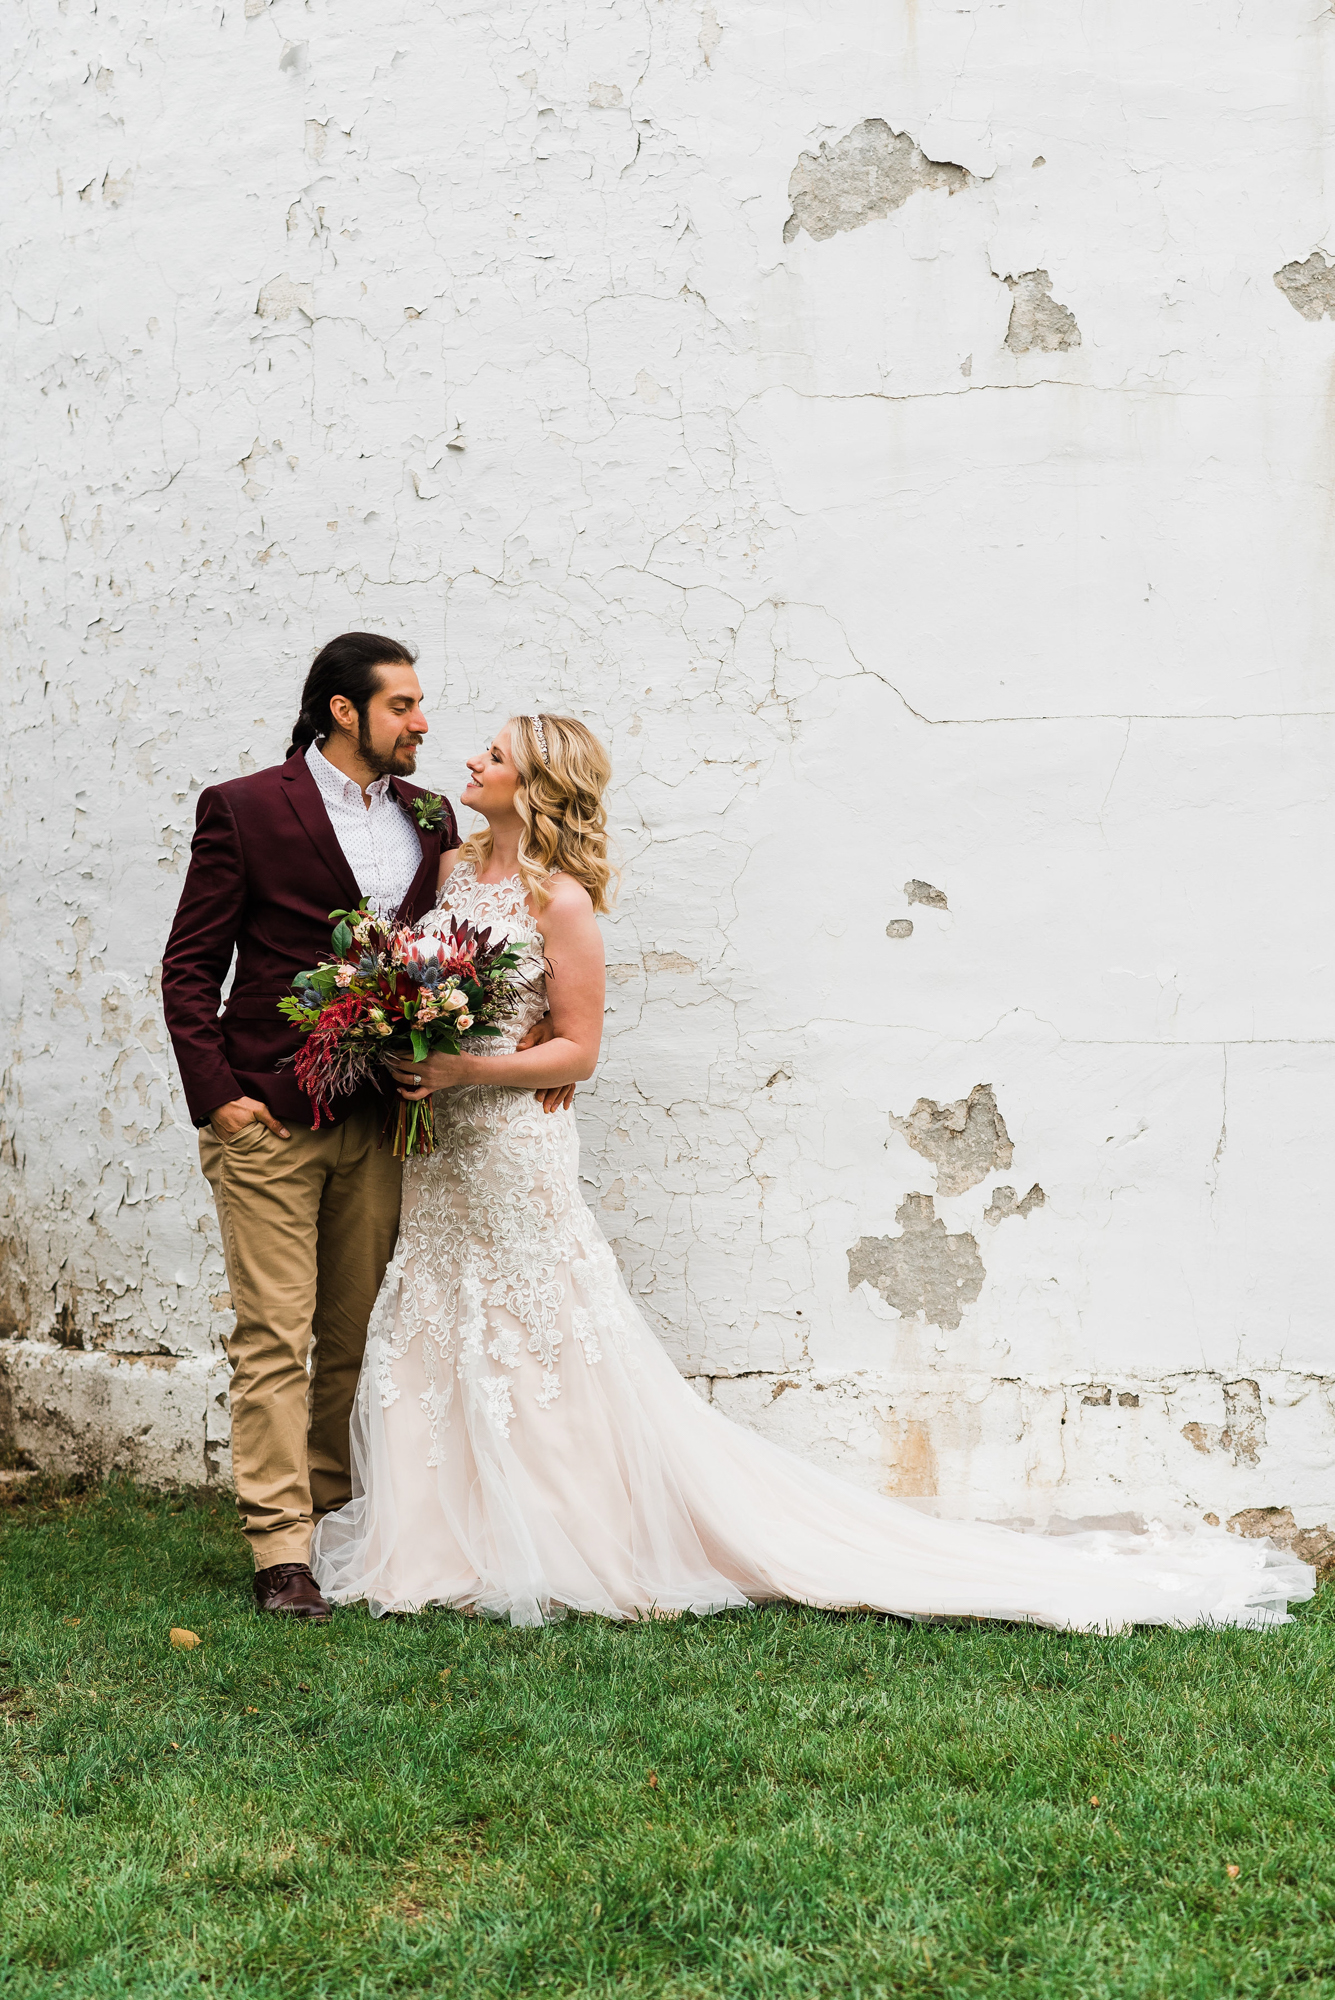 Grundy Center Barn Wedding at the Old Fifty Six